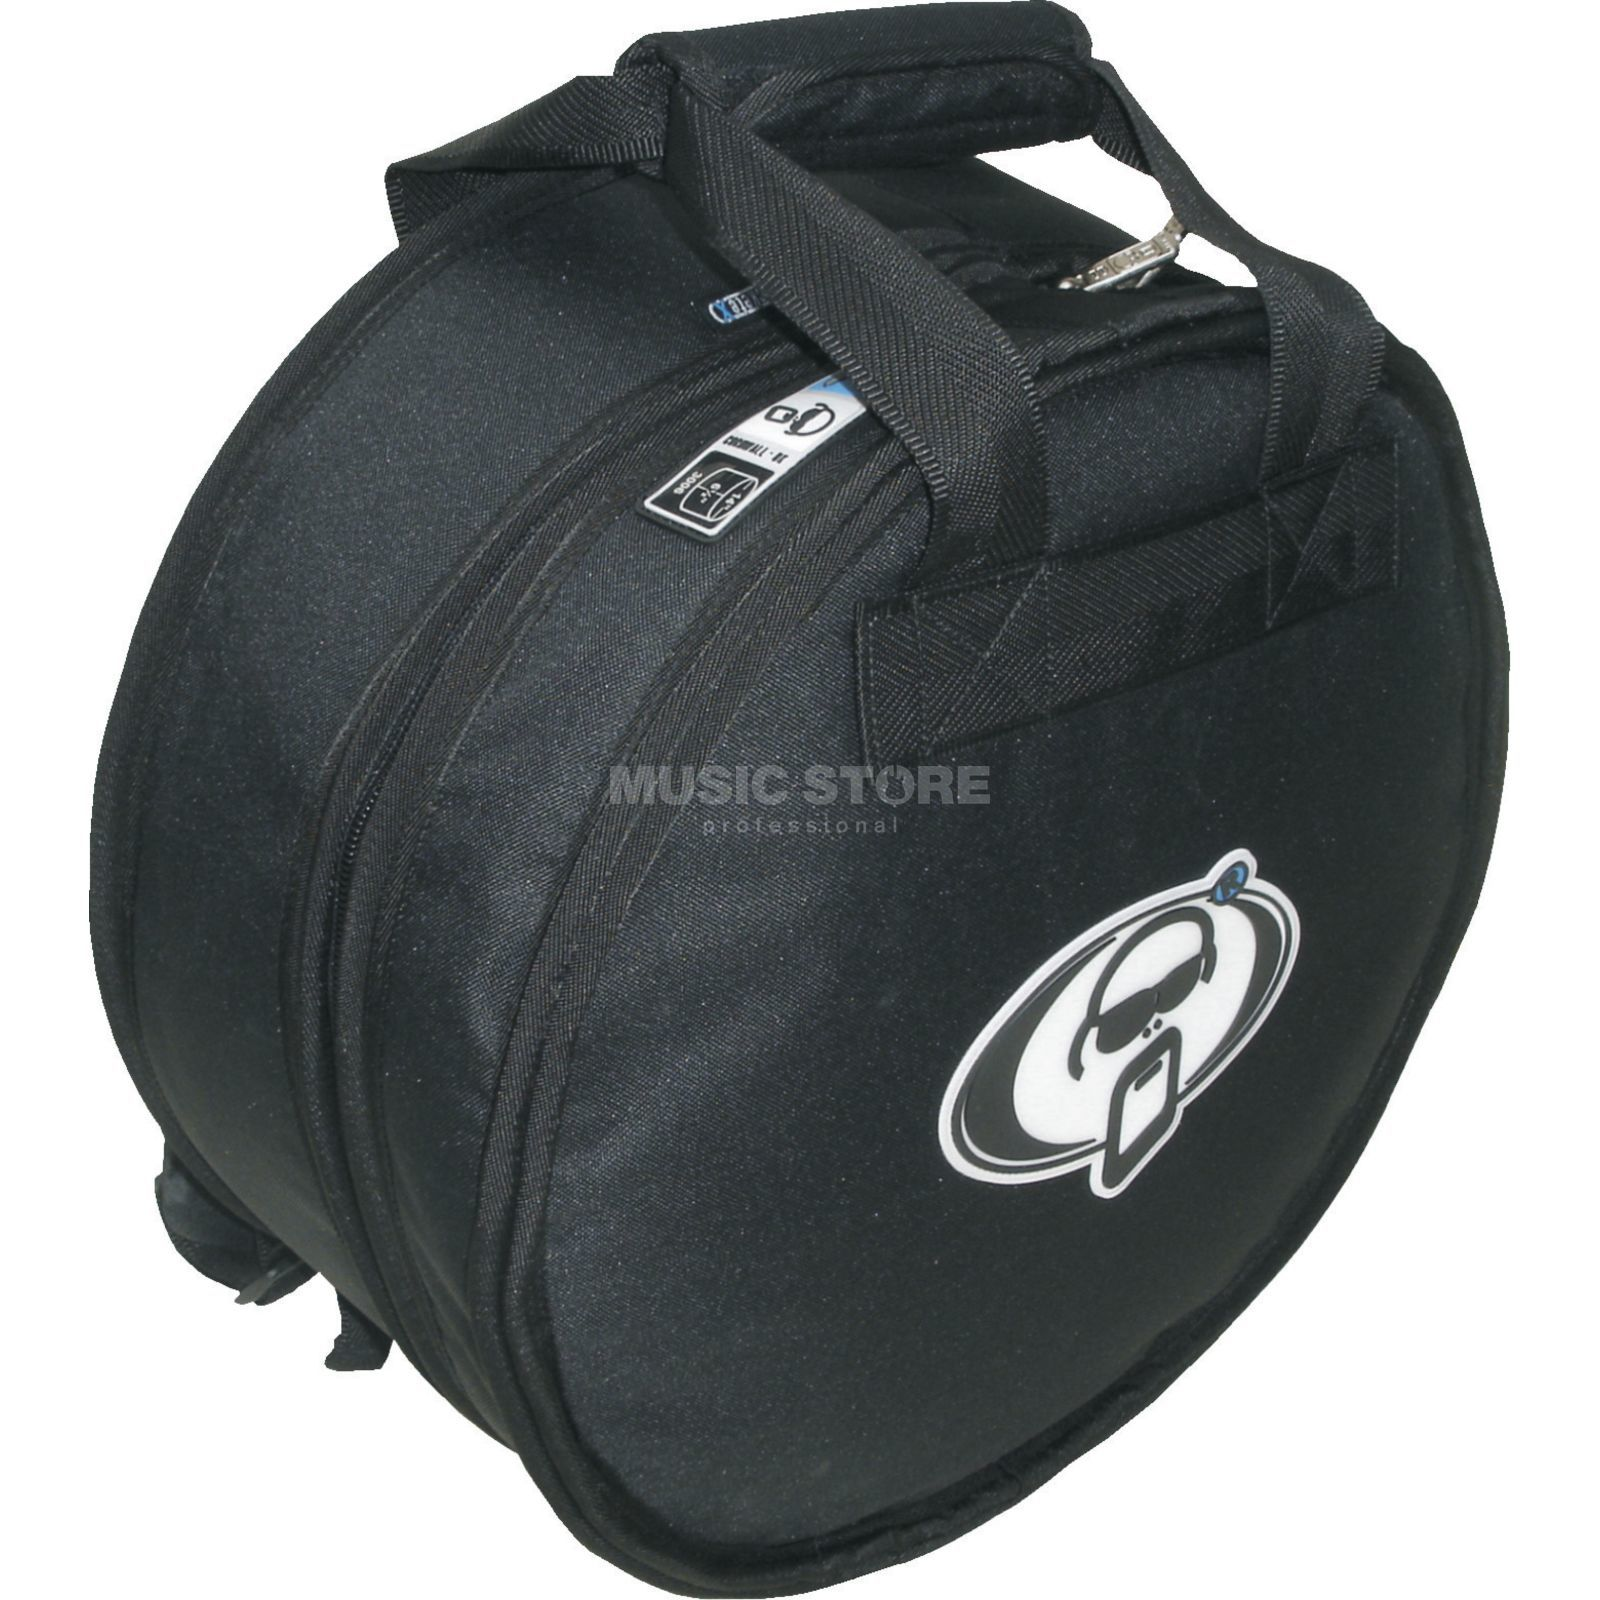 "Protection Racket Snare Bag Rucksack 3006RS, 14""x6,5"" Product Image"